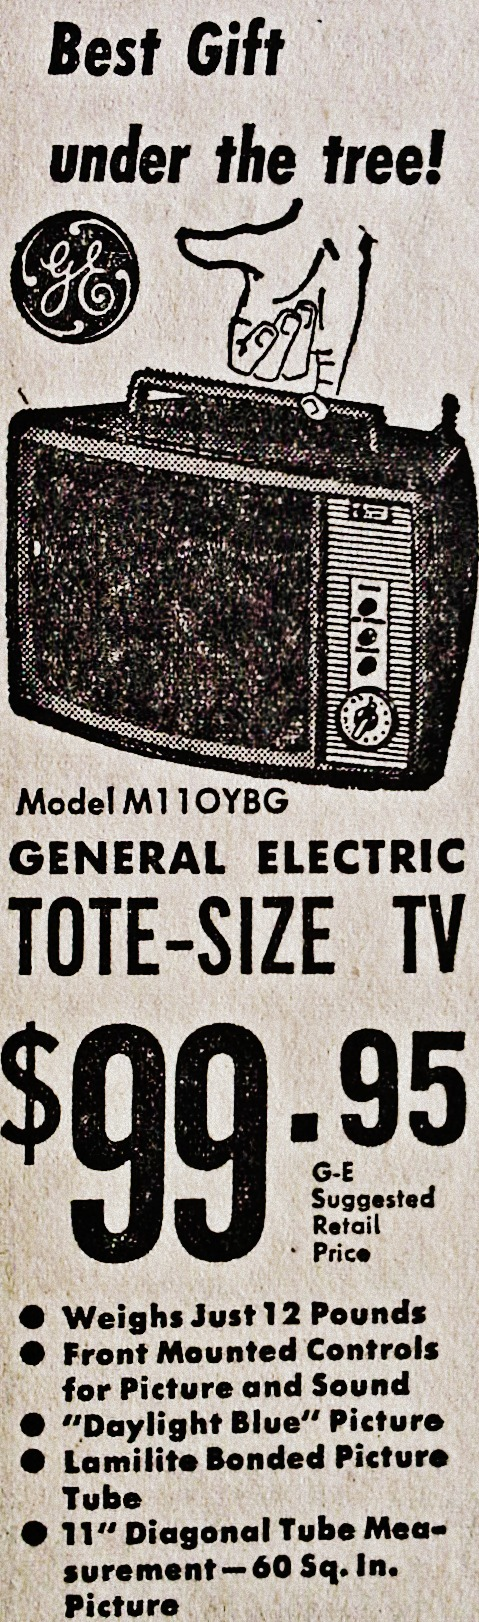 1963 Portable GE Television